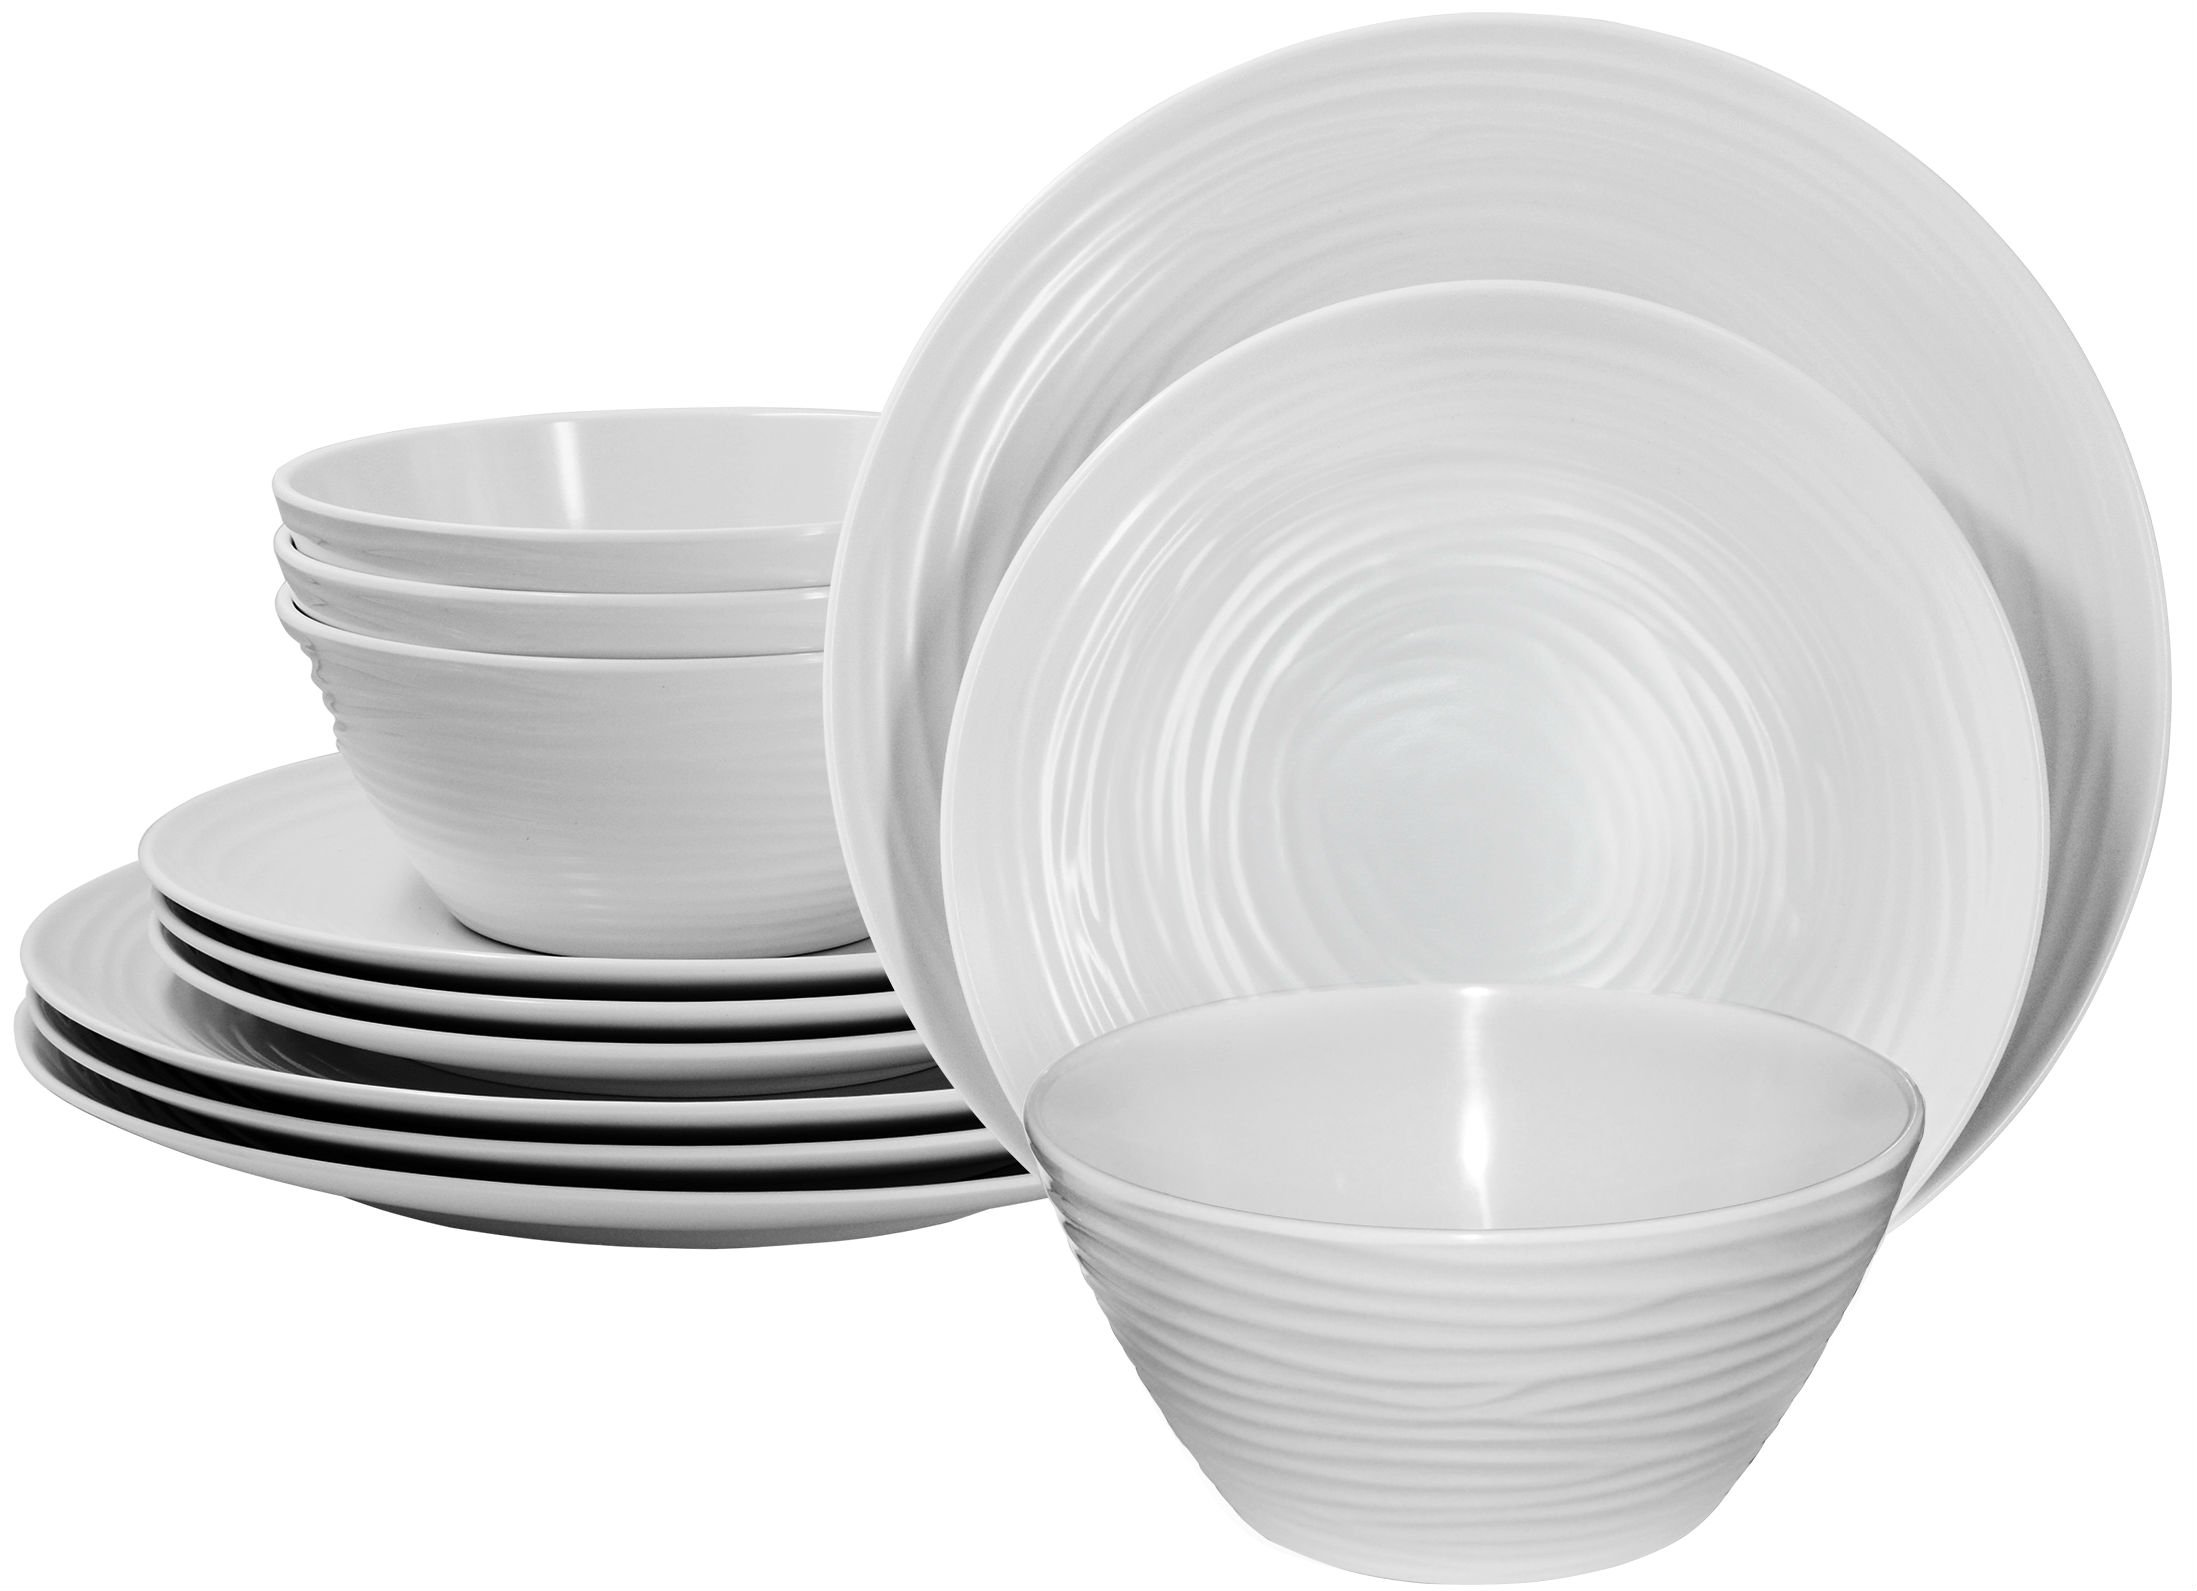 Parhoma White Melamine Home Dinnerware Set, 12-Piece Service for 4 by Parhoma (Image #1)